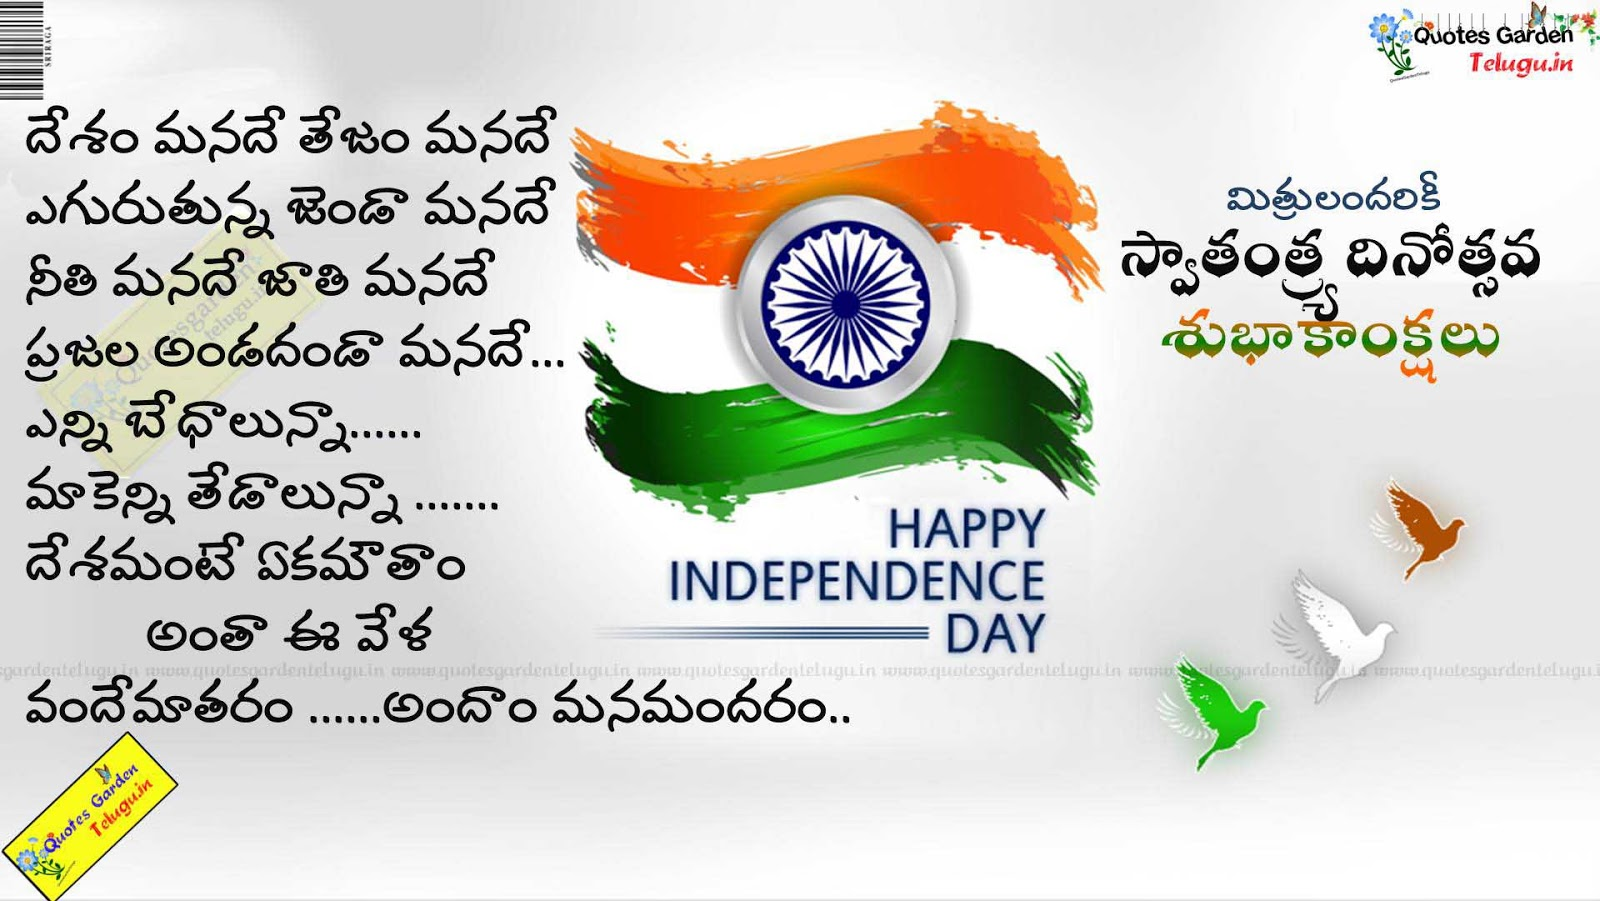 independence day in telugu 69th independence day quotes in tamil, 69th independence day hd wallpapers in tamil, 69th independence day images in tamil, 69th independence day messages in tamil, 69th independence day greetings in tamil, 69th independence day wishes in tamil, 69th independence day speech in tamil, 69th independence day sms in tamil, 69th independence day.